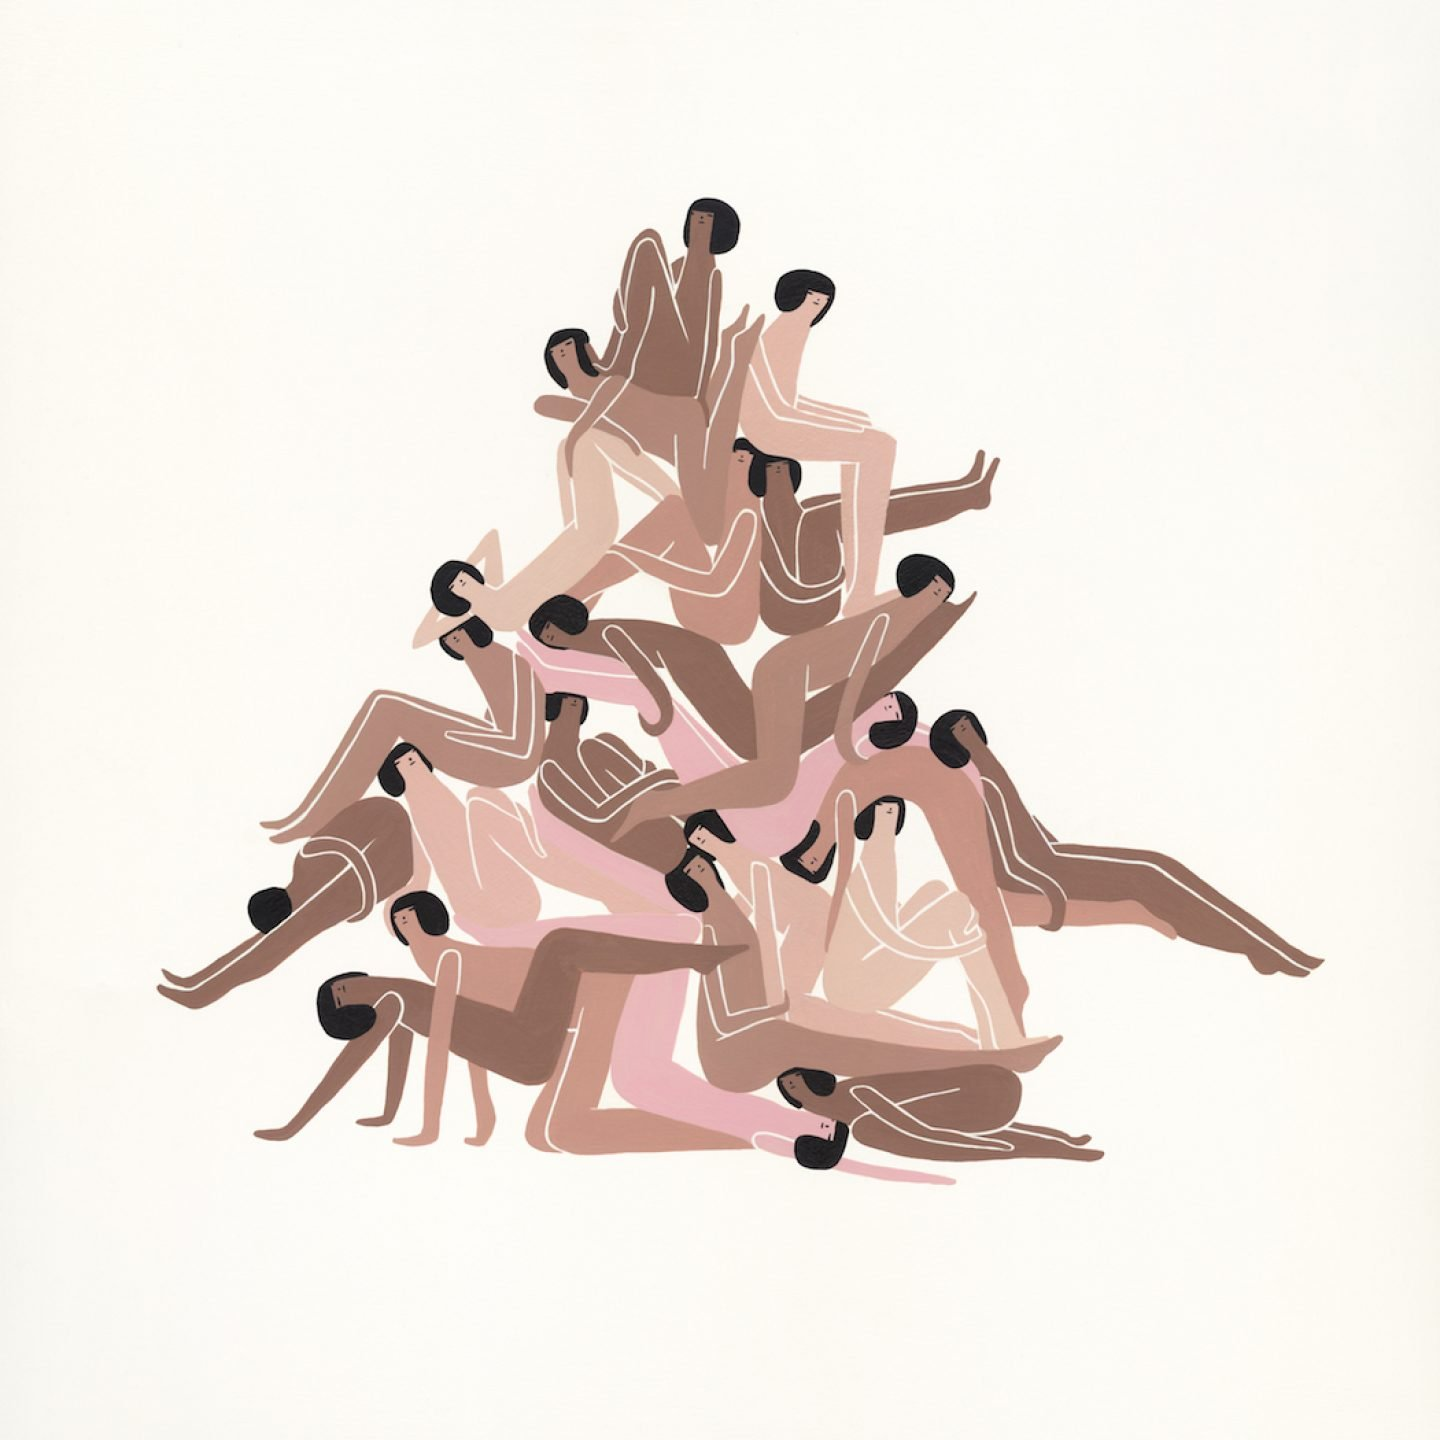 Laura_Berger_Illustration_togetherness